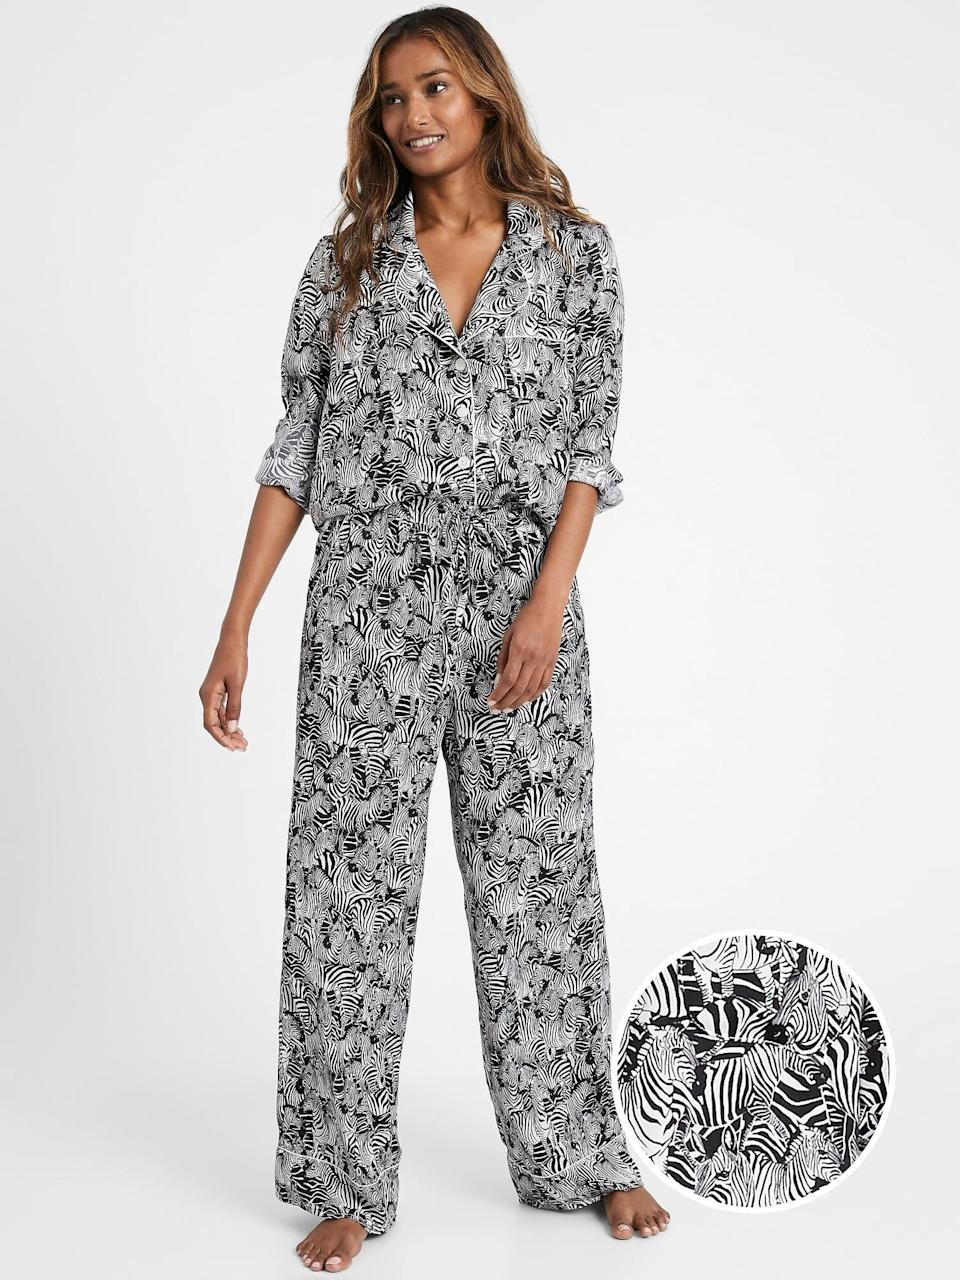 <p>Now's the perfect time to invest in a chic set of pajamas! With these <span>Banana Republic Satin Pajama Set</span> ($87) who's to say it it's a blouse or pajama top?!</p>